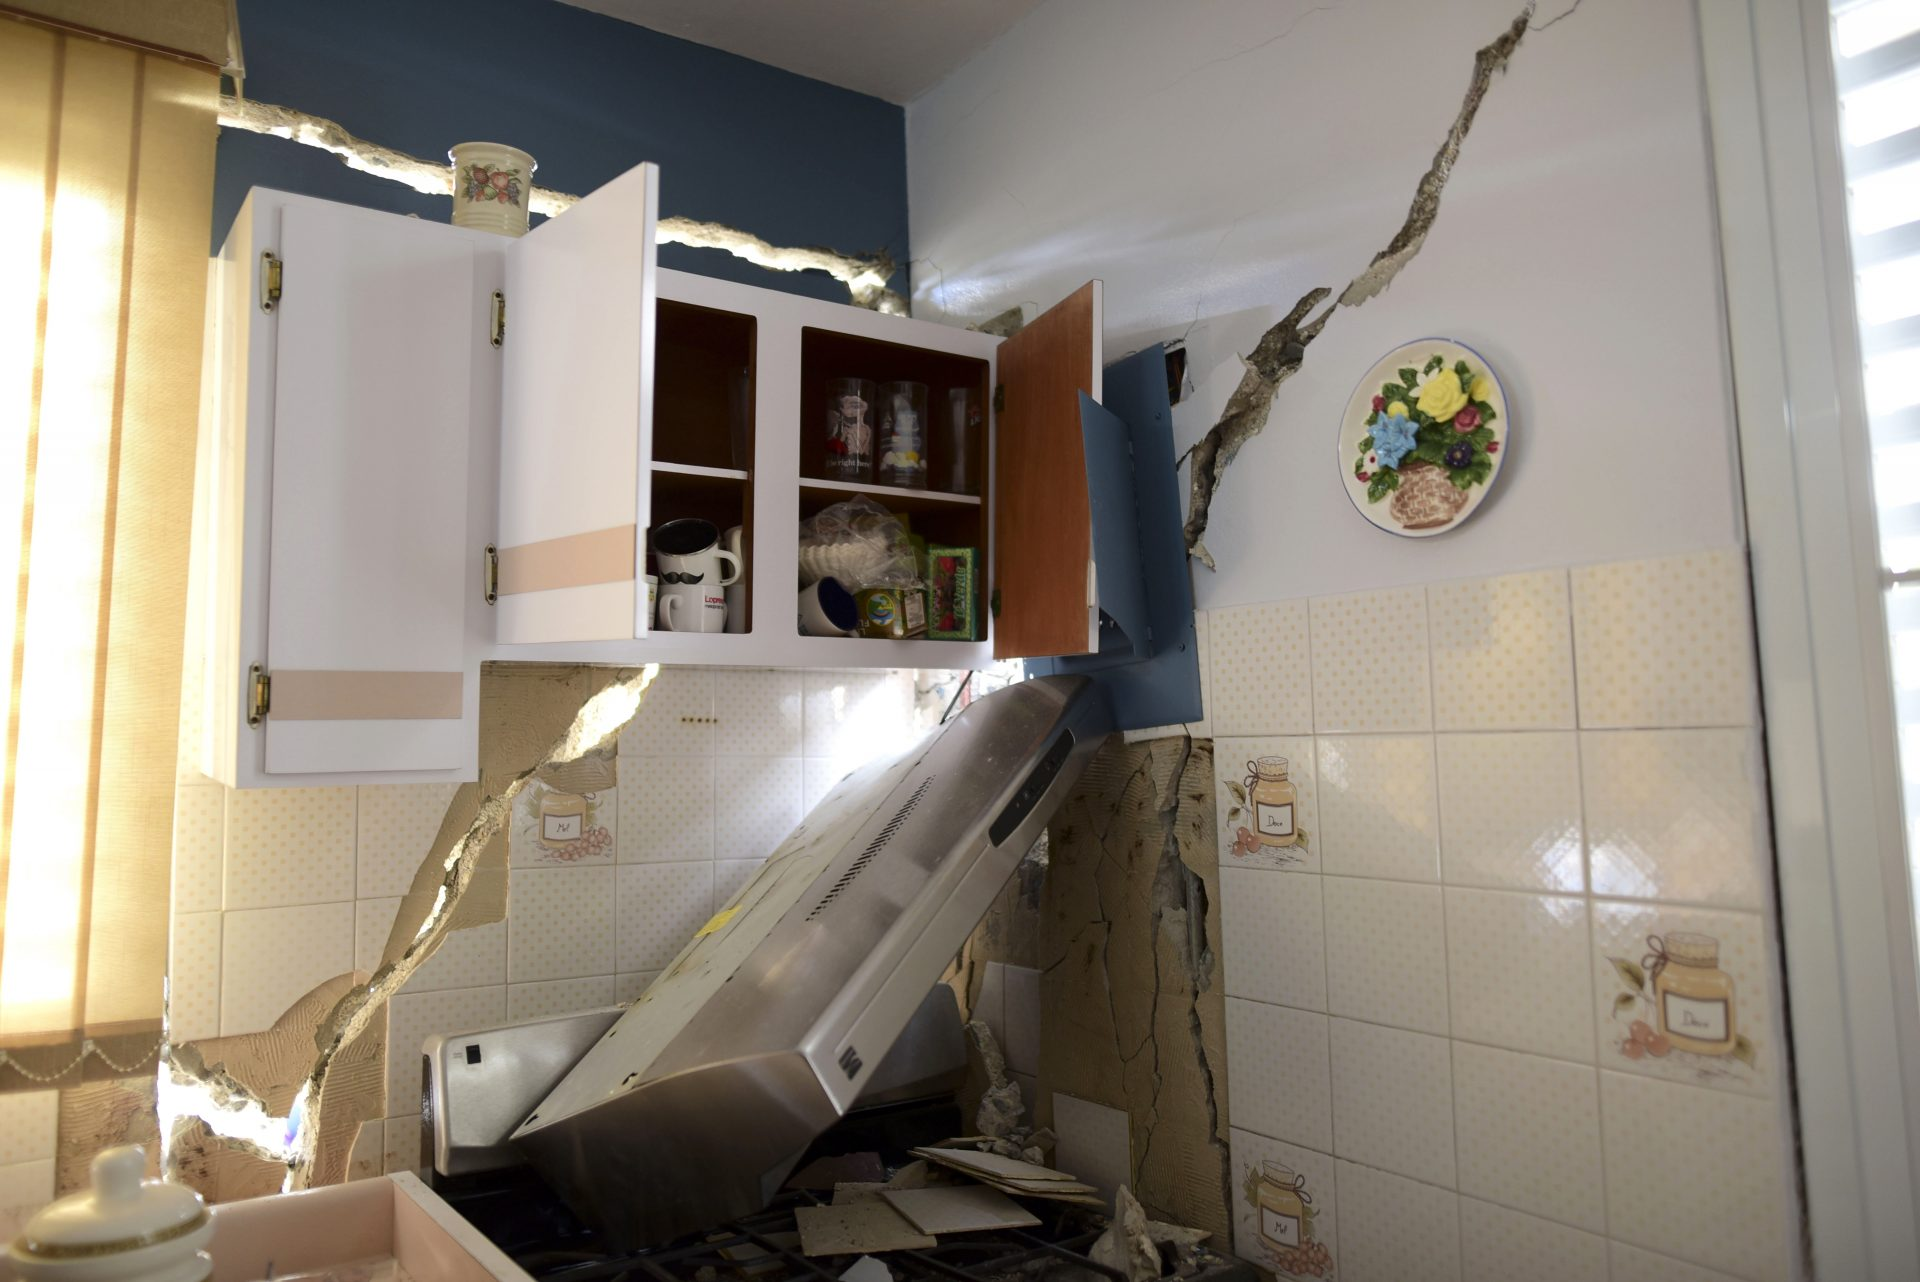 The house of William Mercuchi is damaged after the previous day's magnitude 6.4 earthquake in Yauco, Puerto Rico, Wednesday, Jan. 8, 2020. More than 250,000 Puerto Ricans remained without water on Wednesday and another half a million without power, which also affected telecommunications.